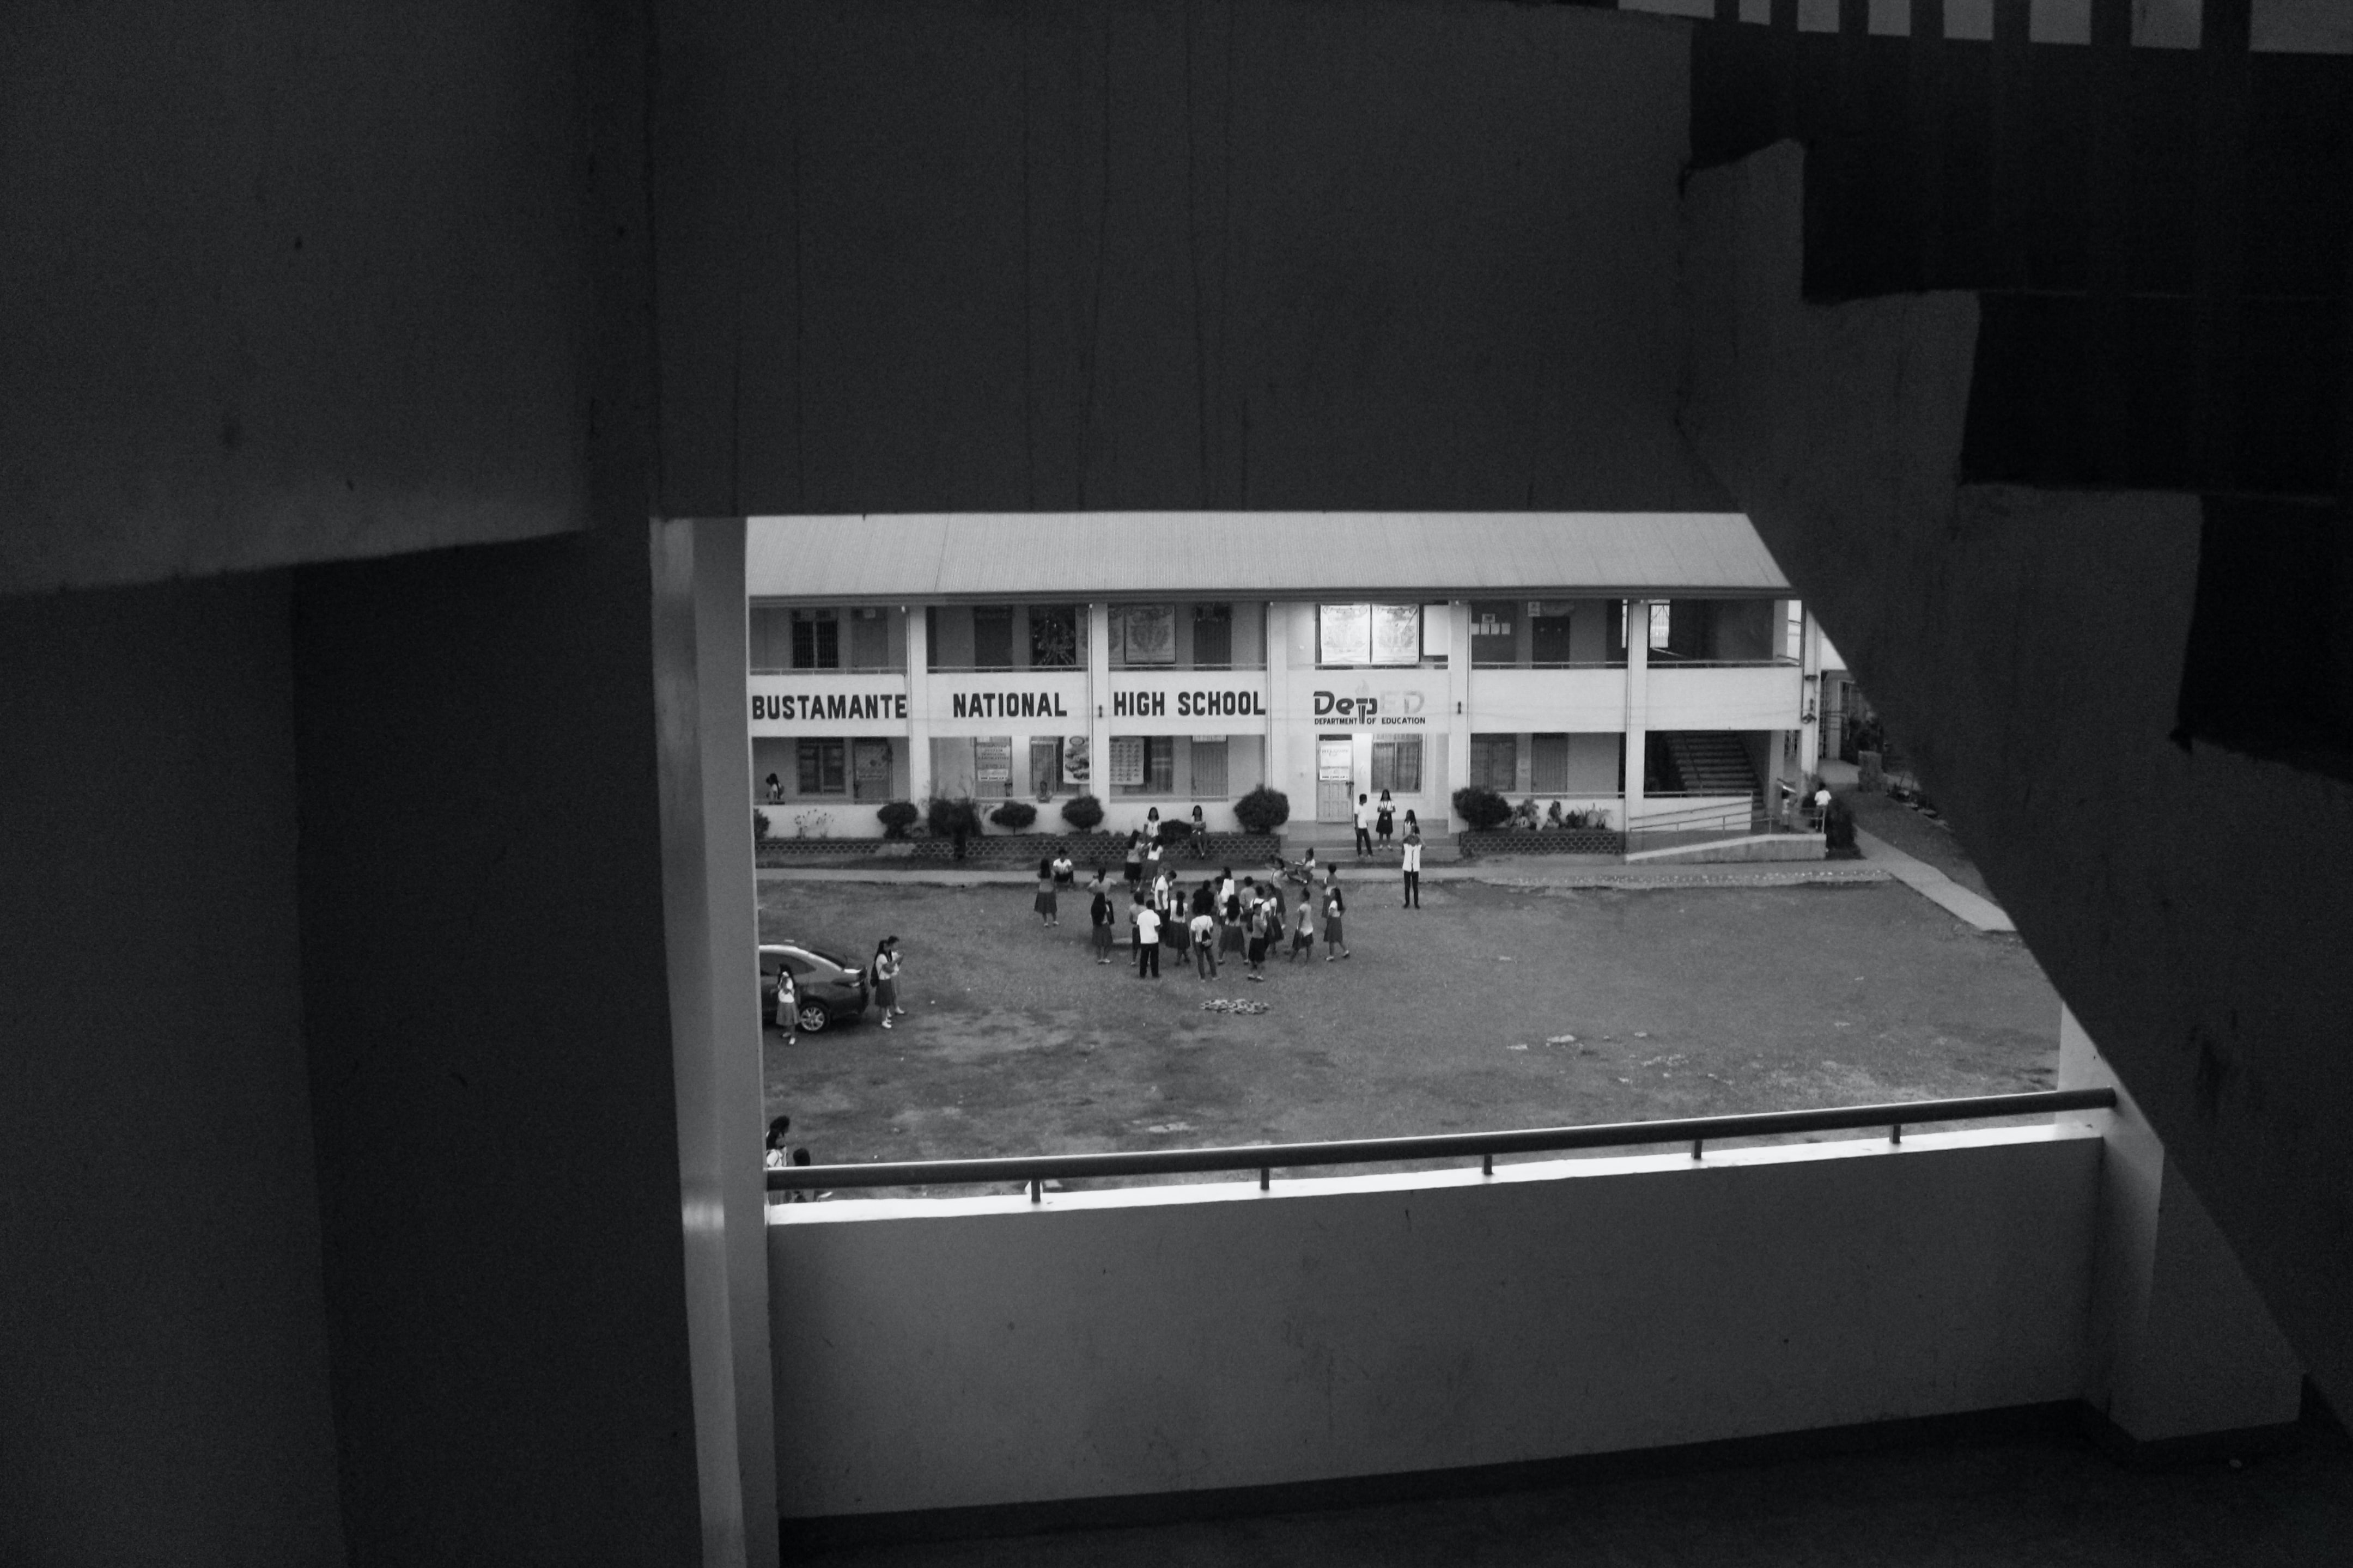 grayscale photography of people standing front of building